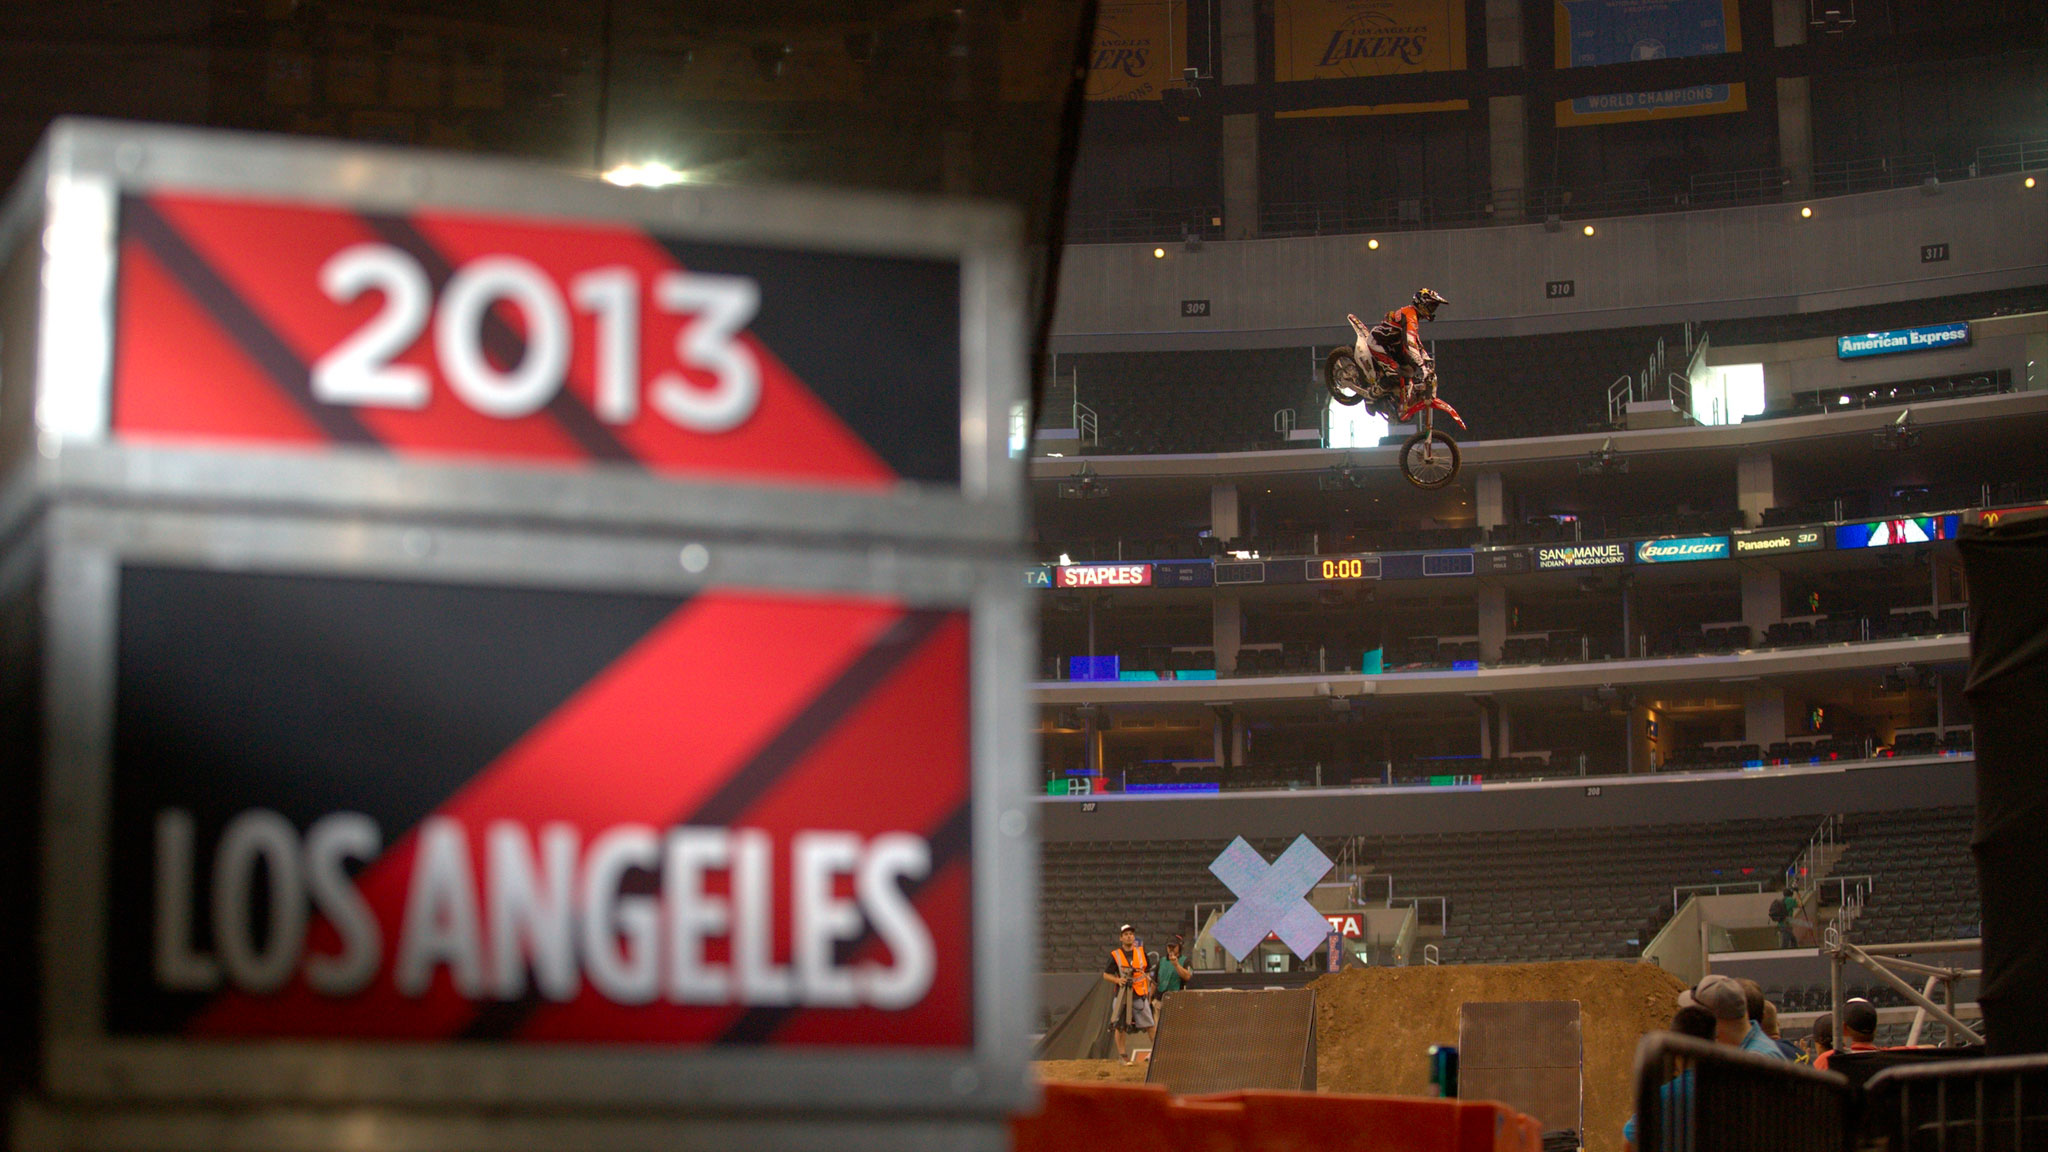 After a storied 11-year run in Los Angeles, Sunday marked the last time the city will host X Games.